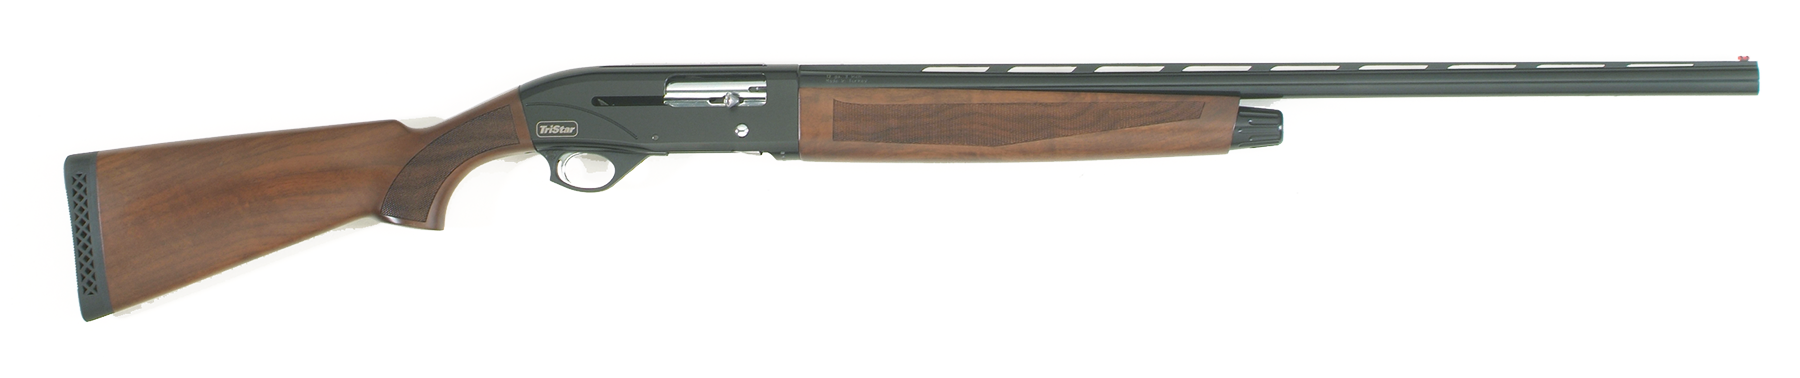 TriStar Viper G2 Youth Semi-Auto Shotgun 3'' 20 Gauge 24'' Black - Turkish Walnut